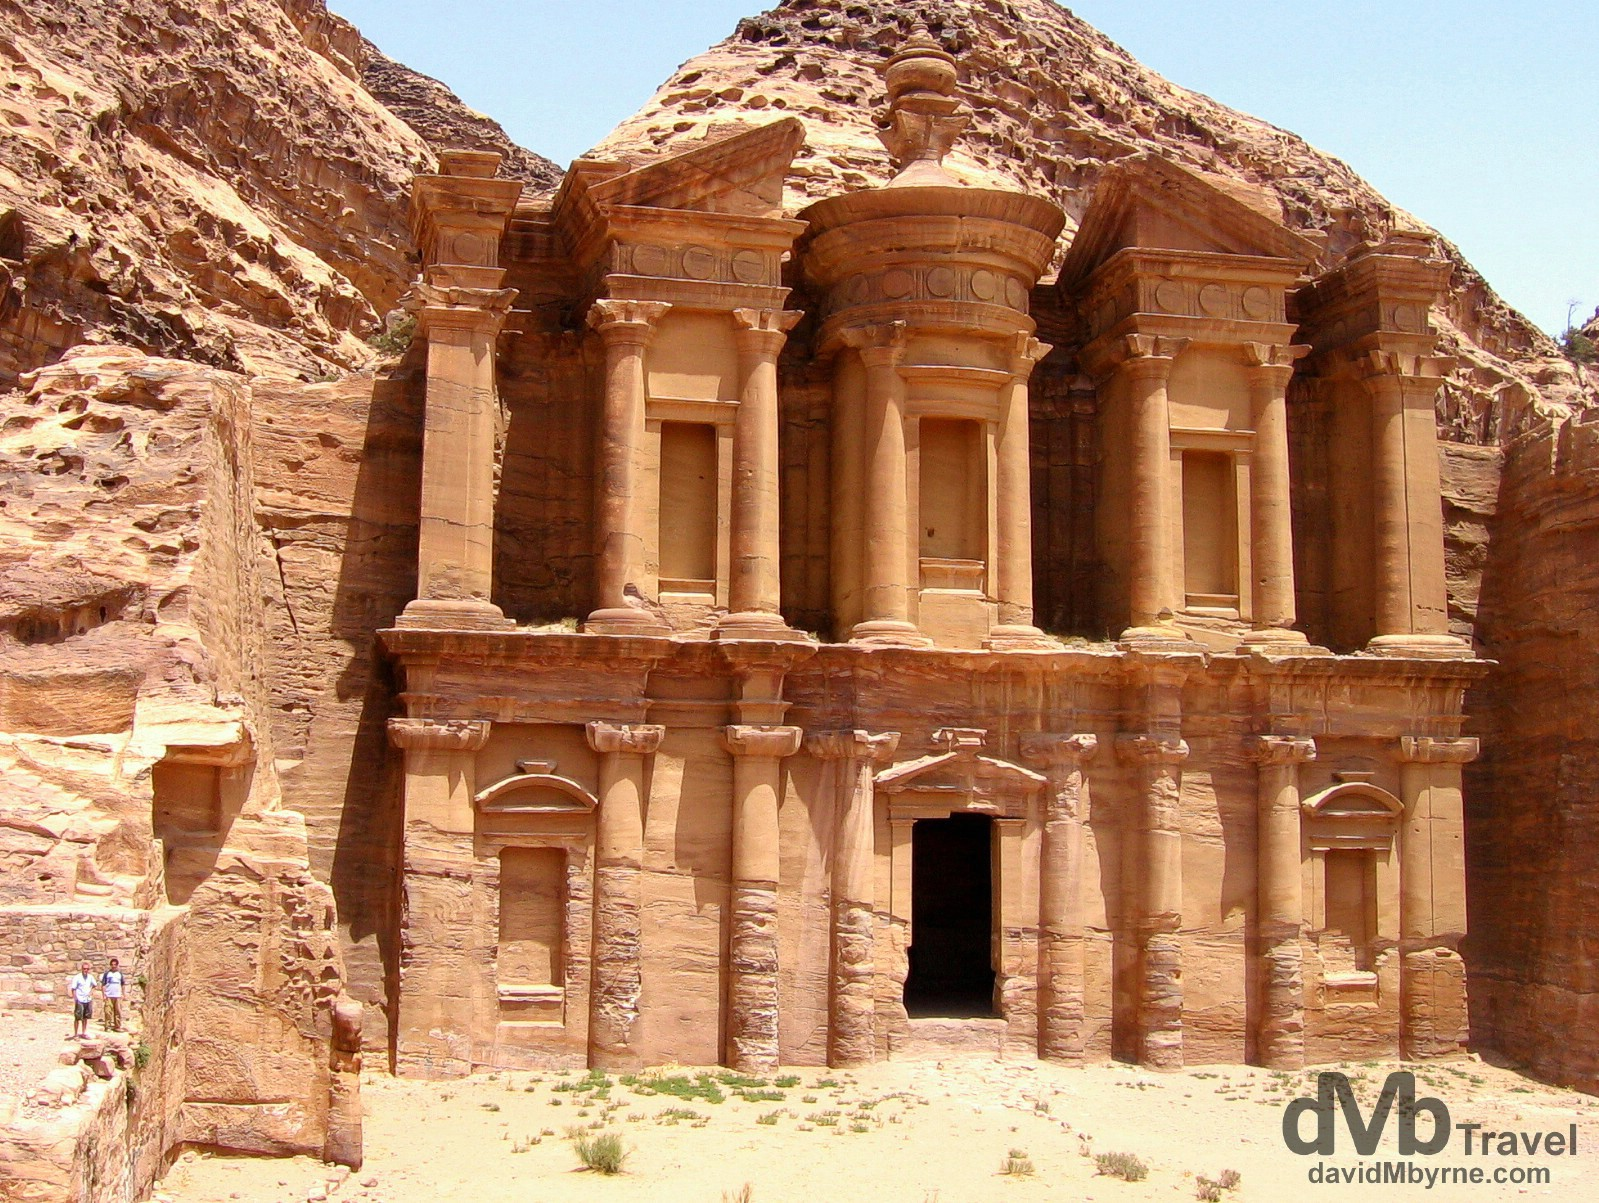 El Deir (The Monastery), one of the largest buildings in Petra, Jordan. April 27, 2008.